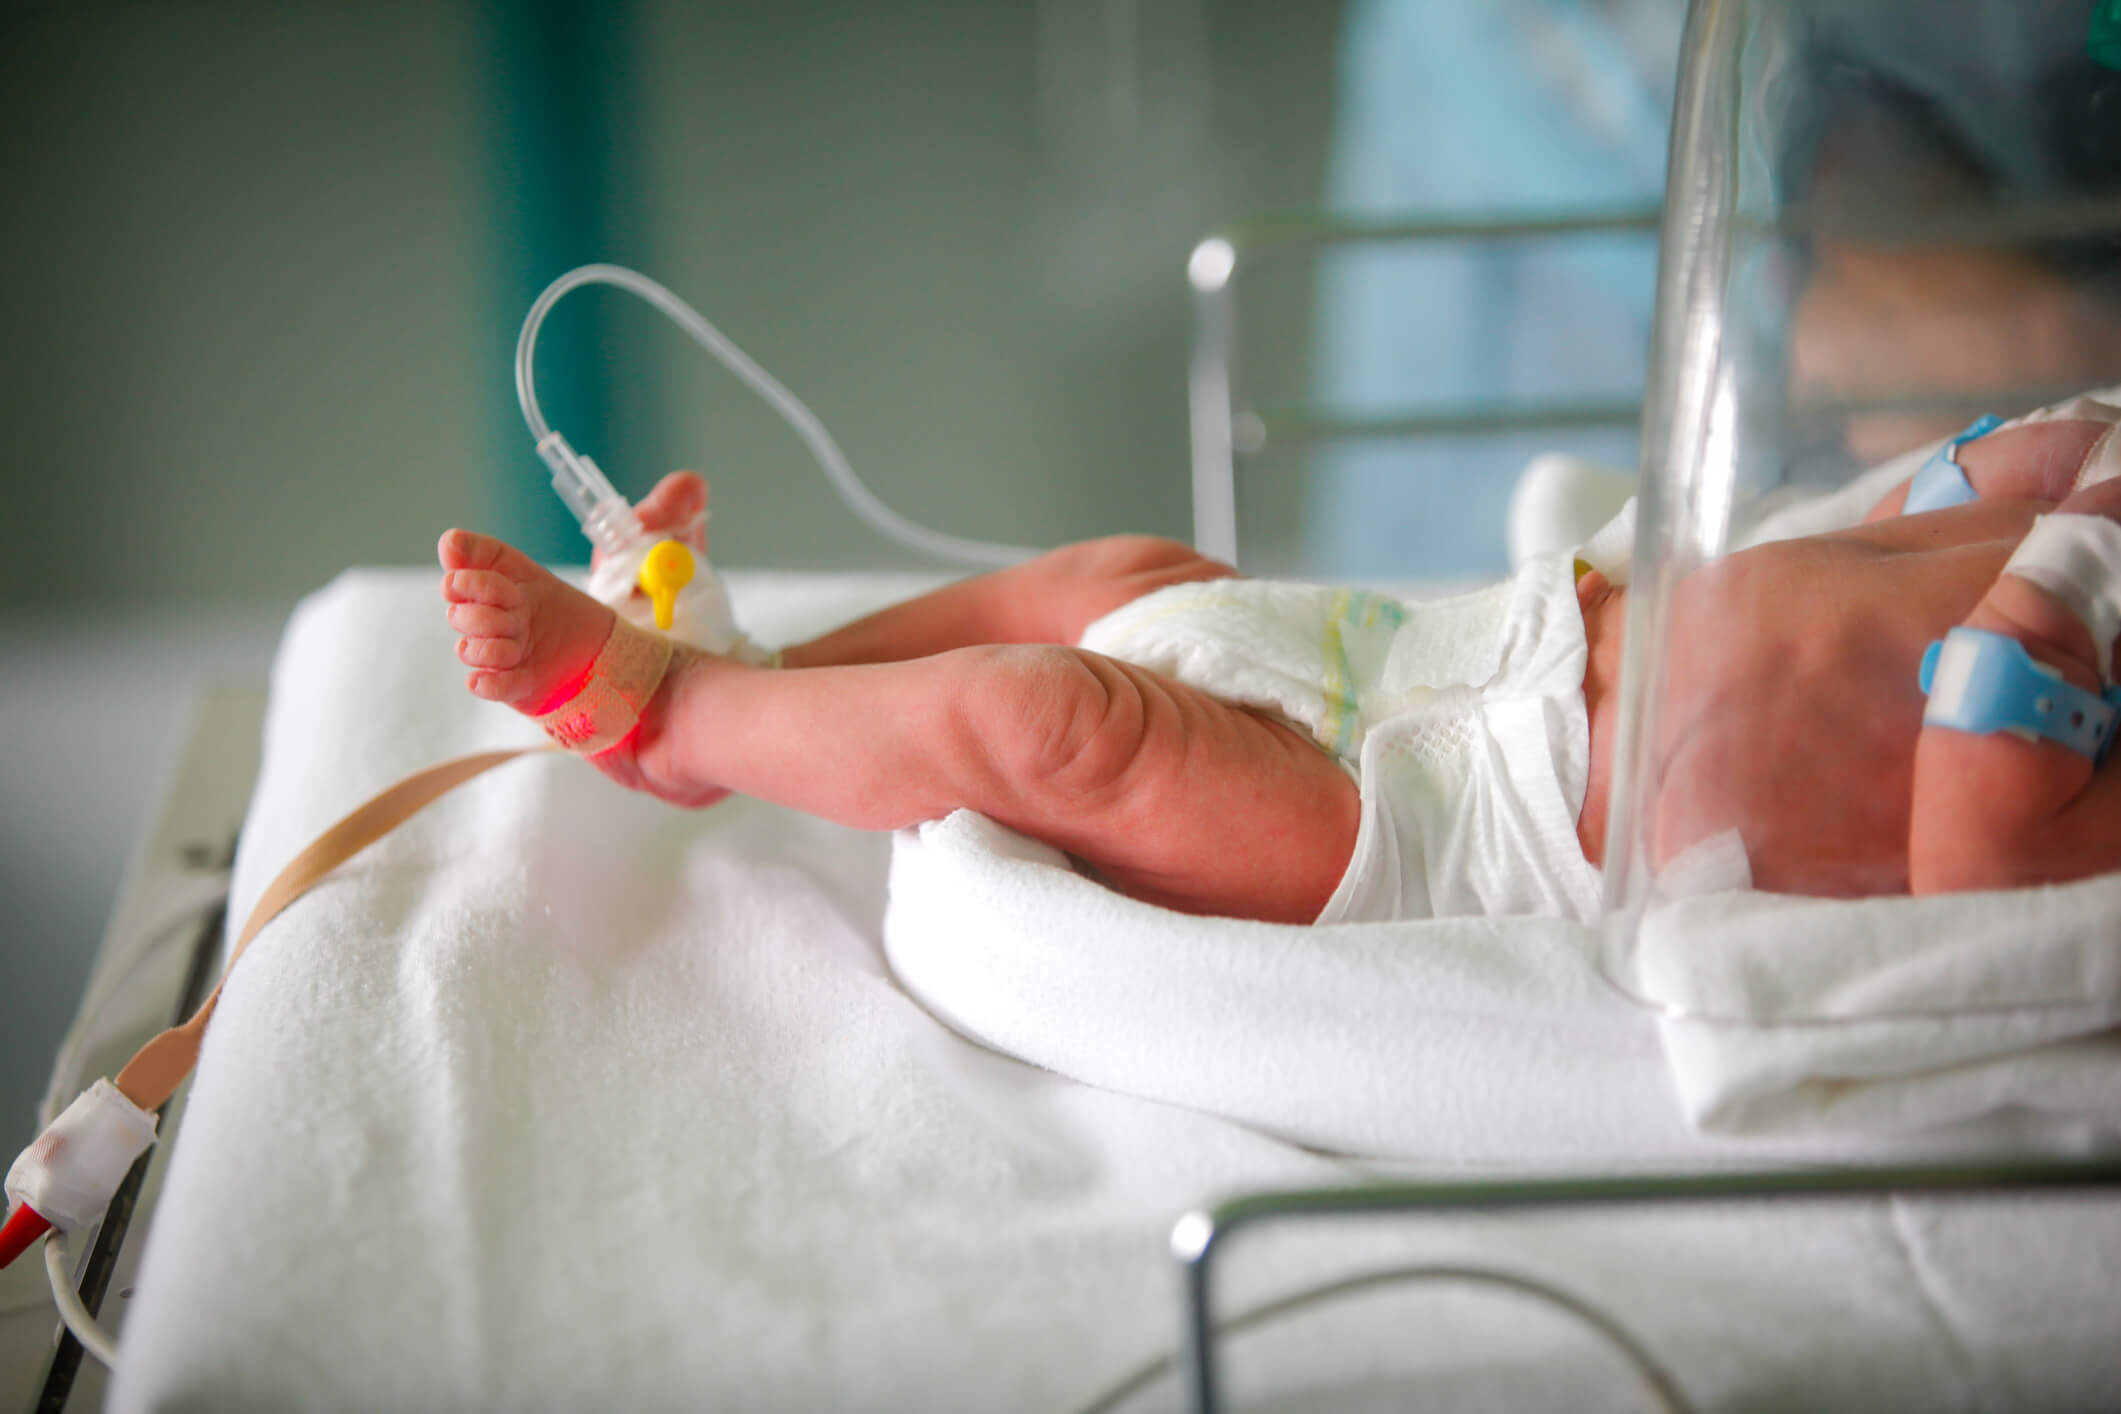 What You Need to Know About Pediatric Respiratory Emergencies